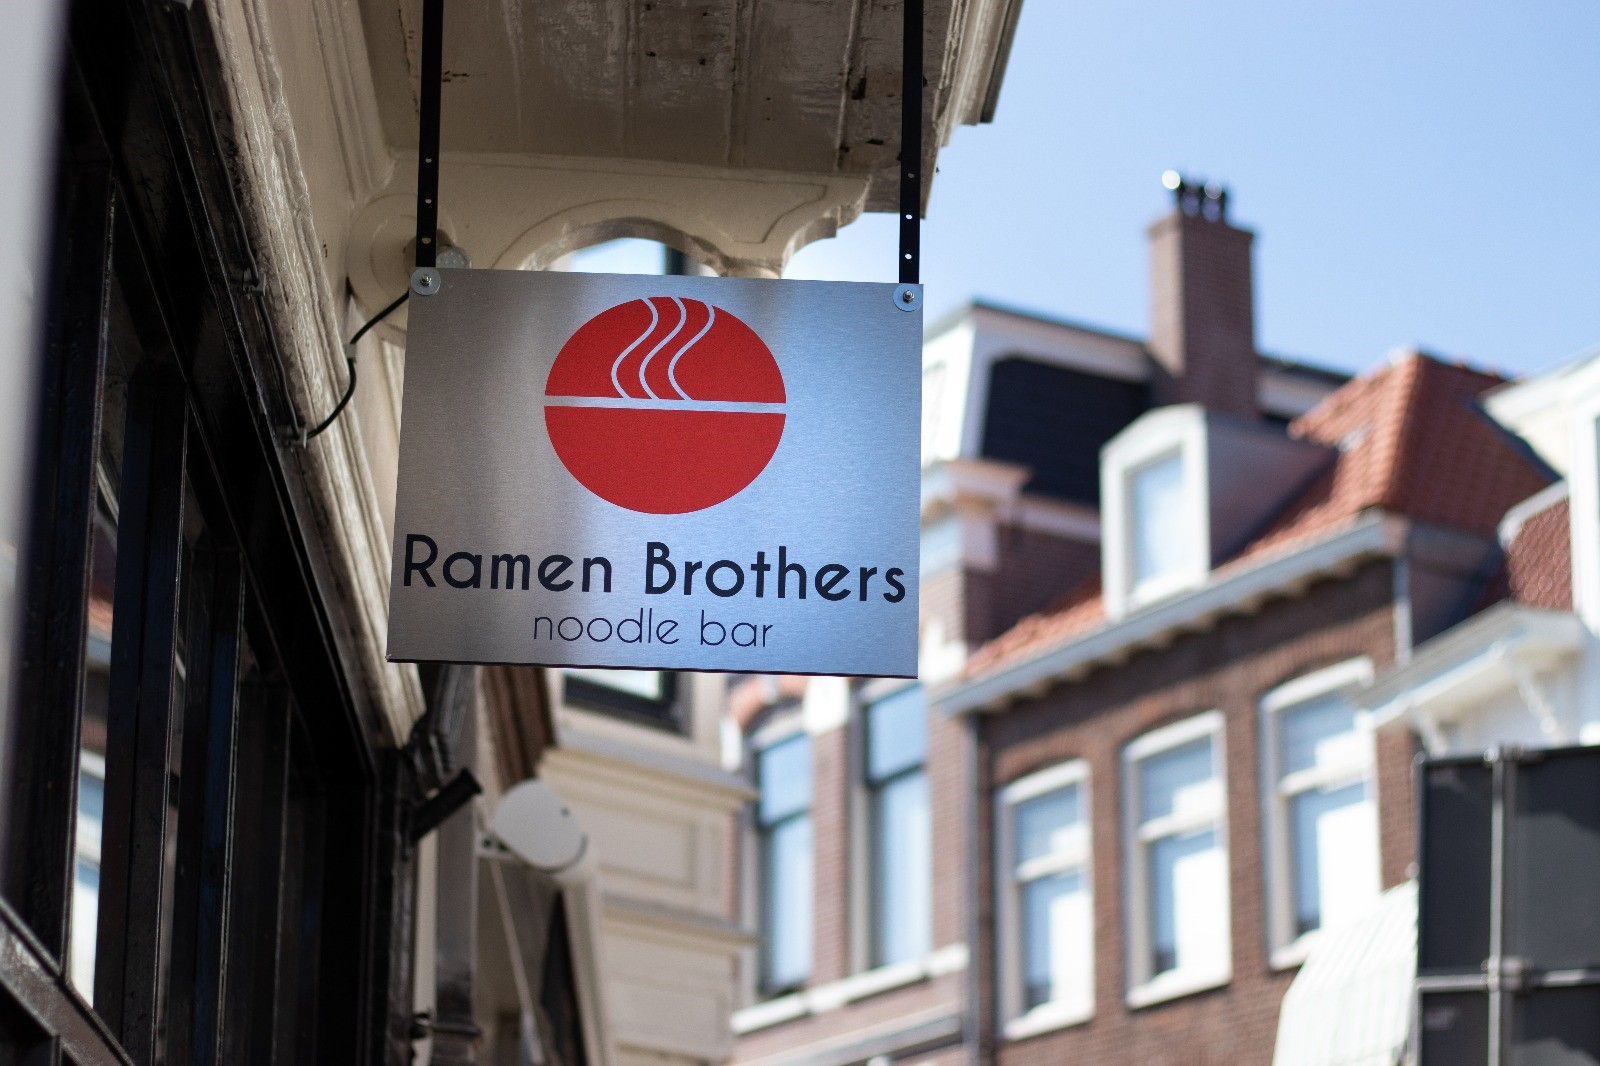 The Ramen Brothers